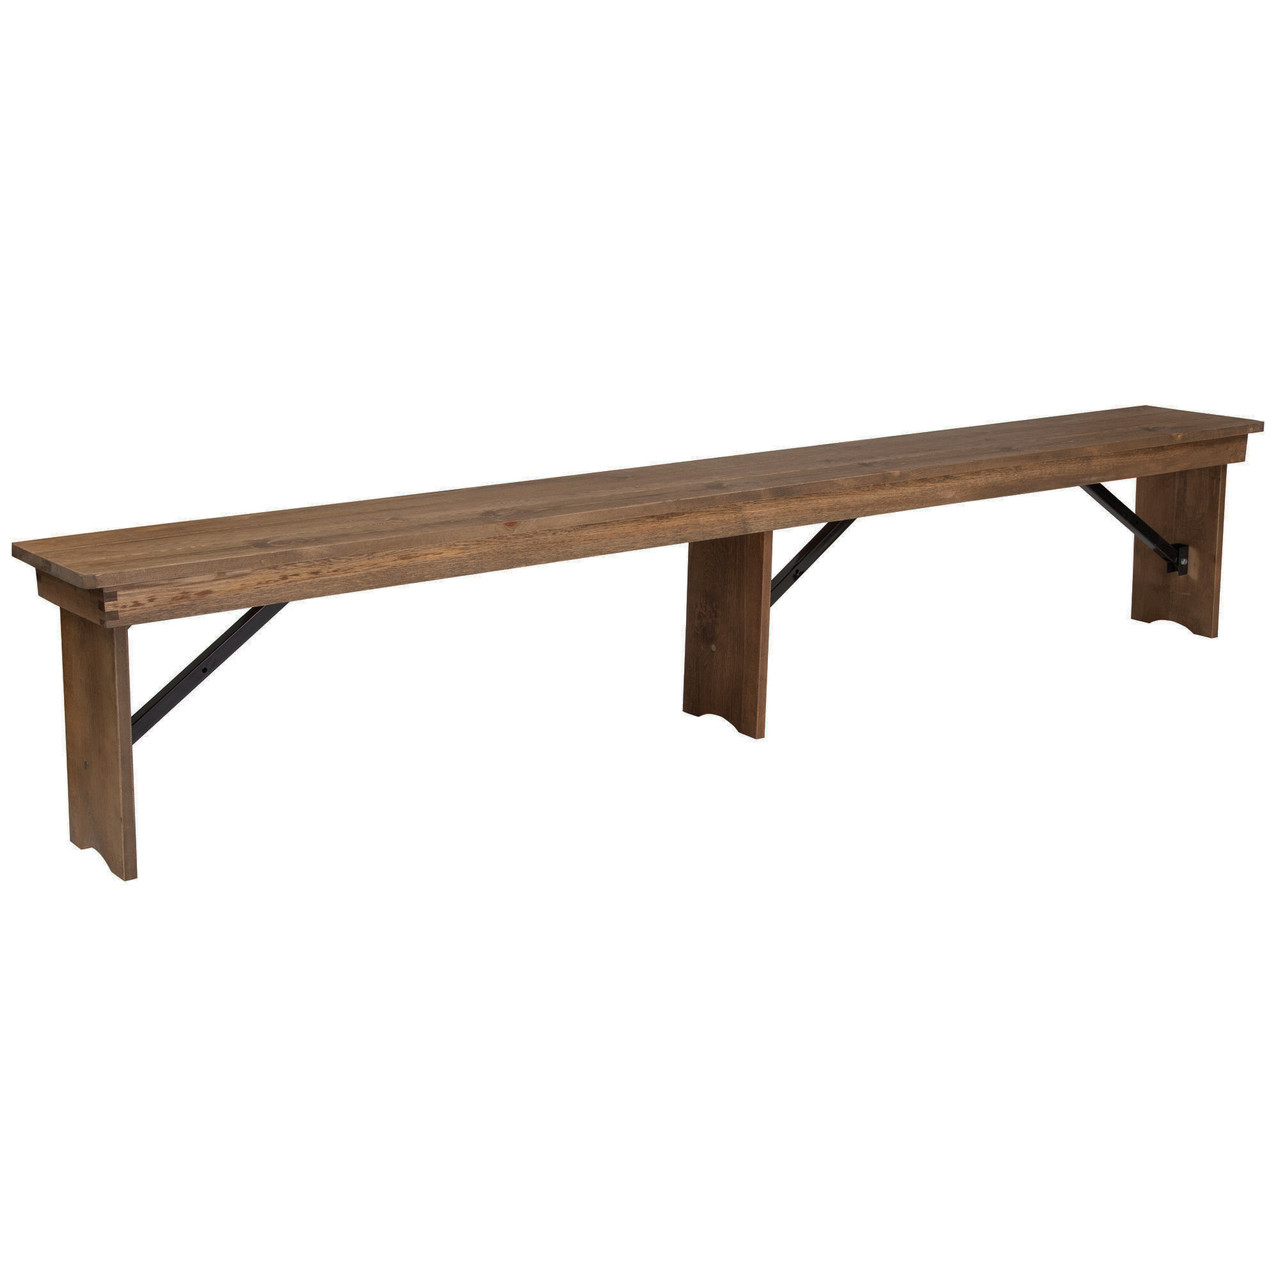 12x96 Farmhouse Table Bench Rustic Pine